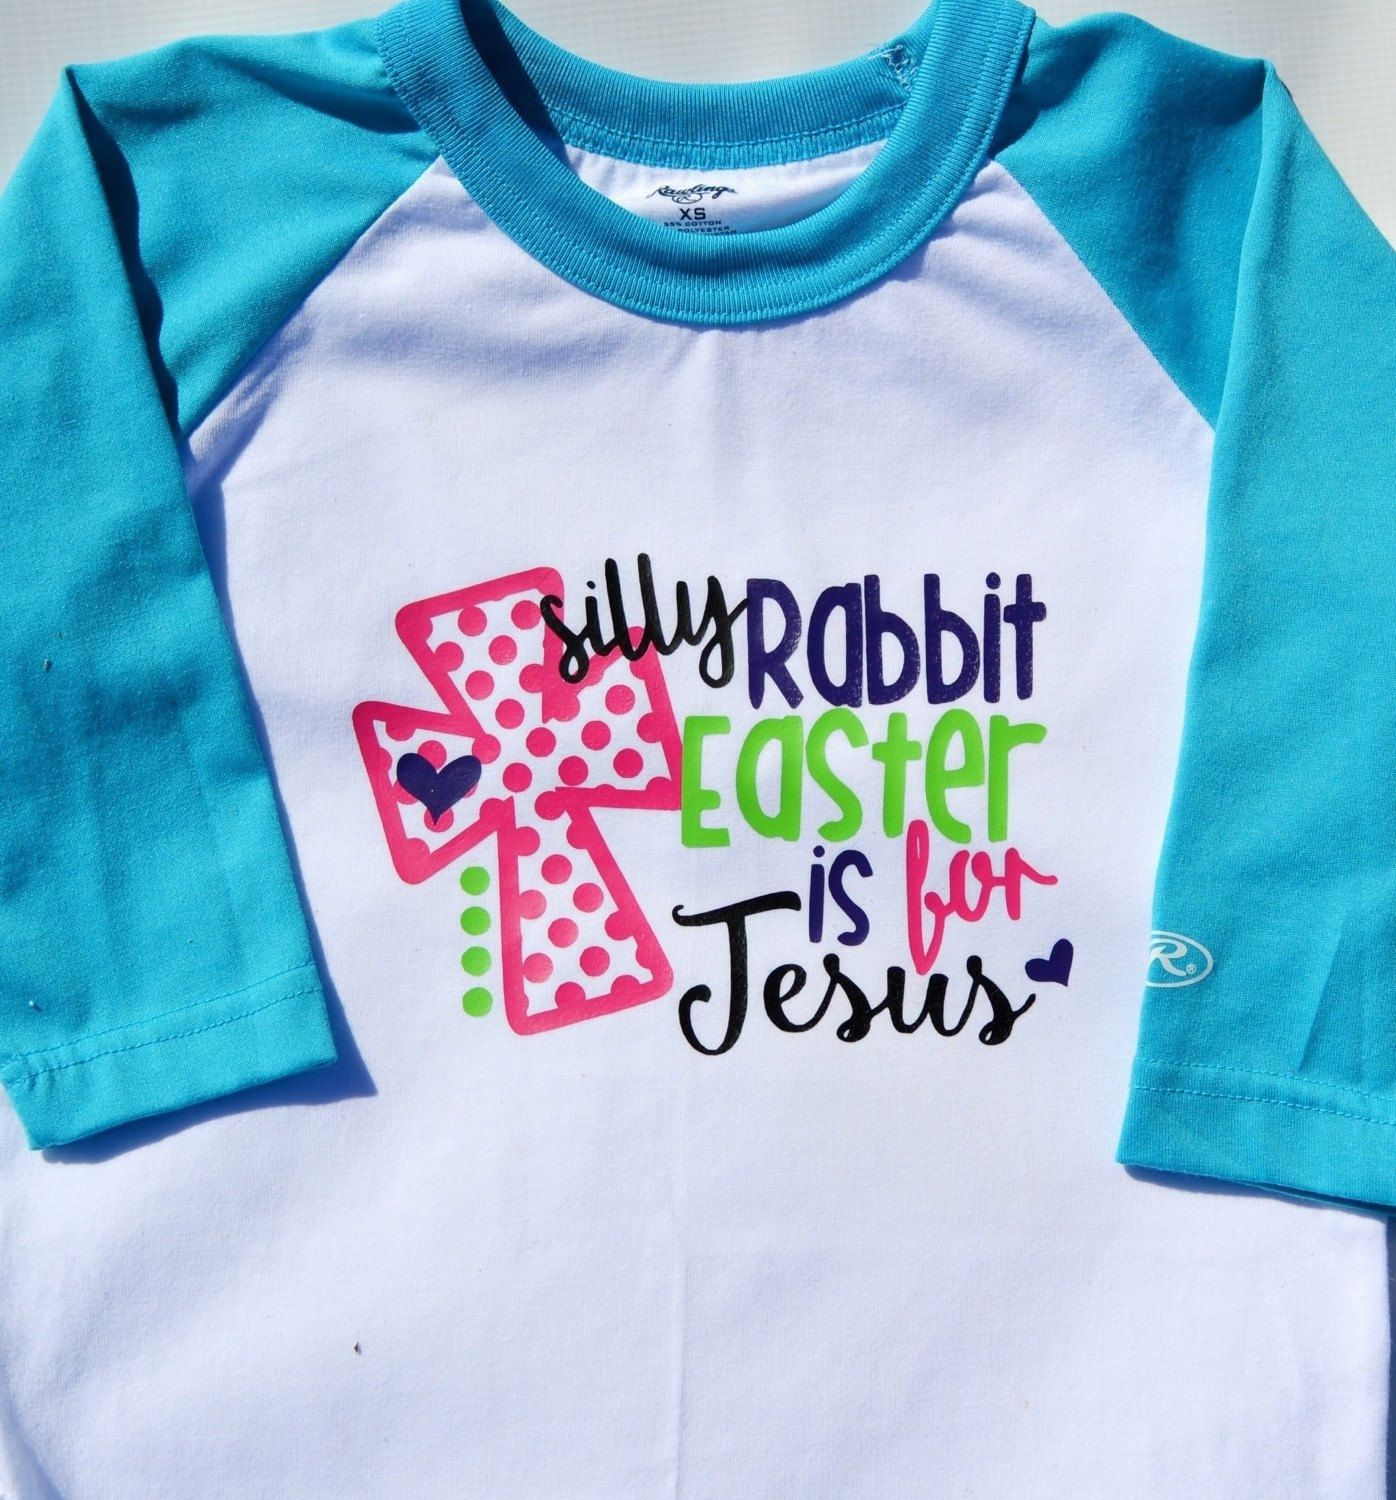 Silly Rabbit Easter is for Jesus Cute 3//4 Sleeve Baseball Jersey Toddler Shirt